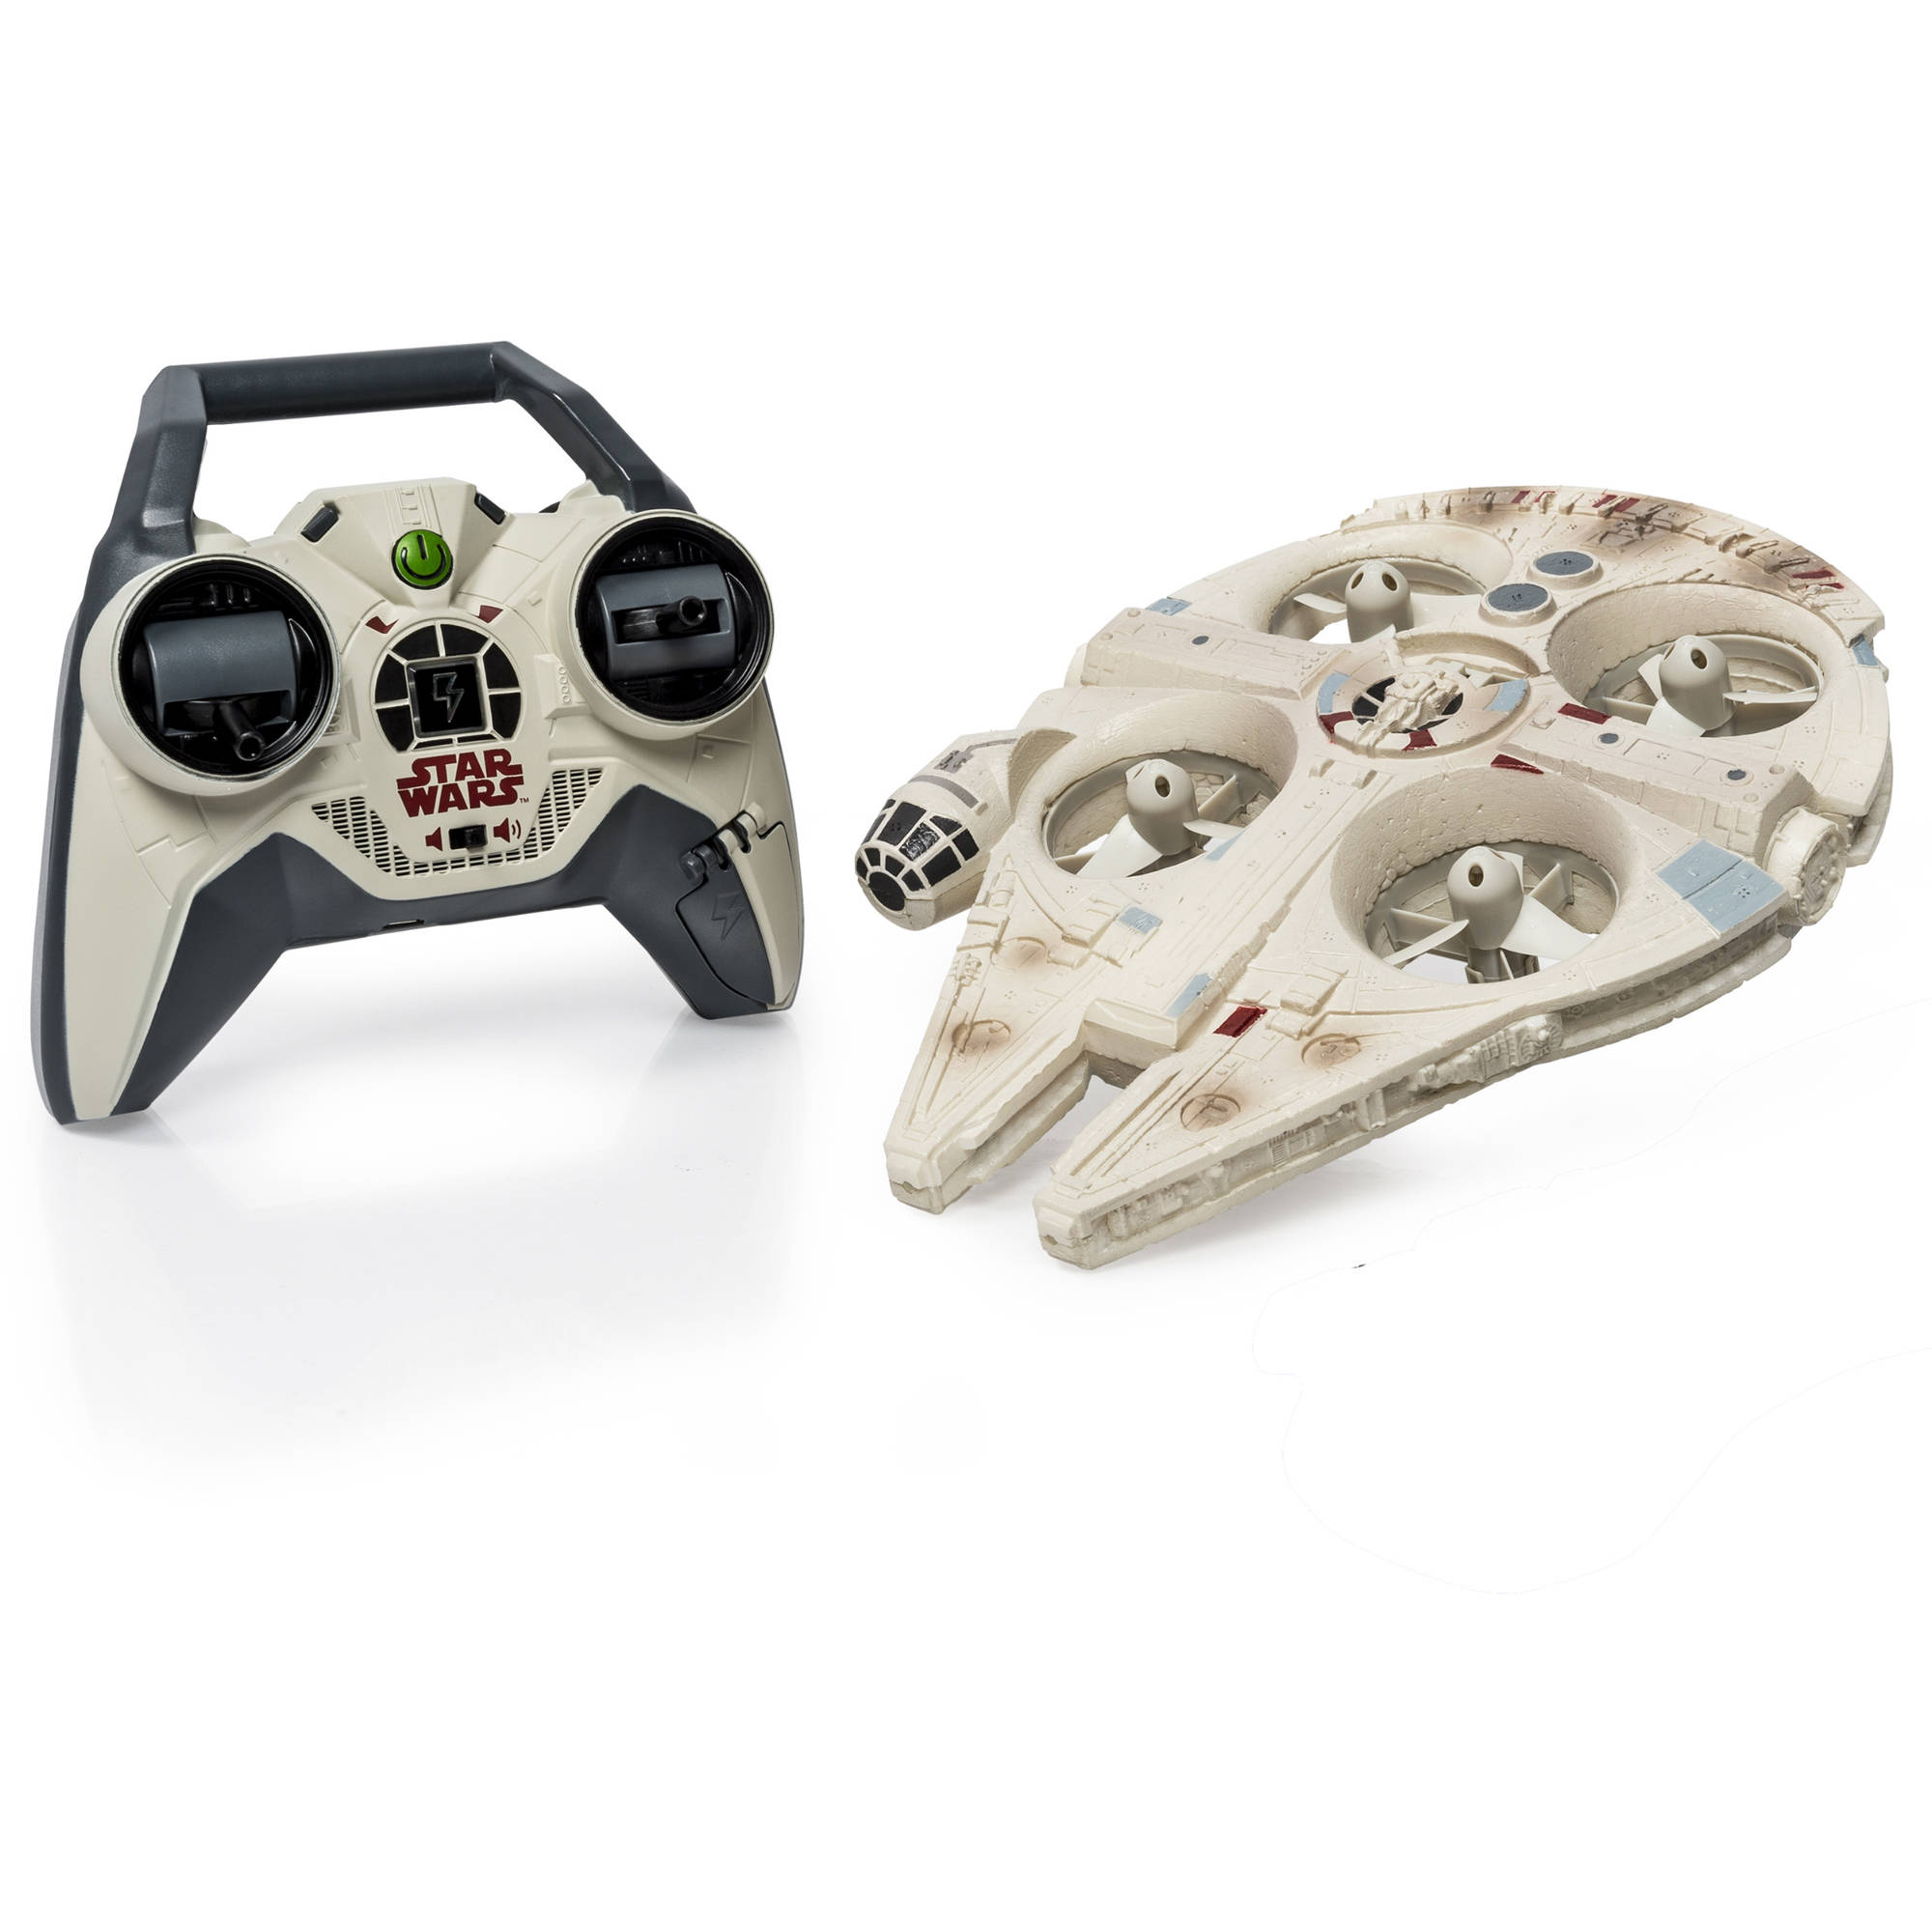 Air Hogs Star Wars, Rogue One Remote Control Millennium Falcon Drone